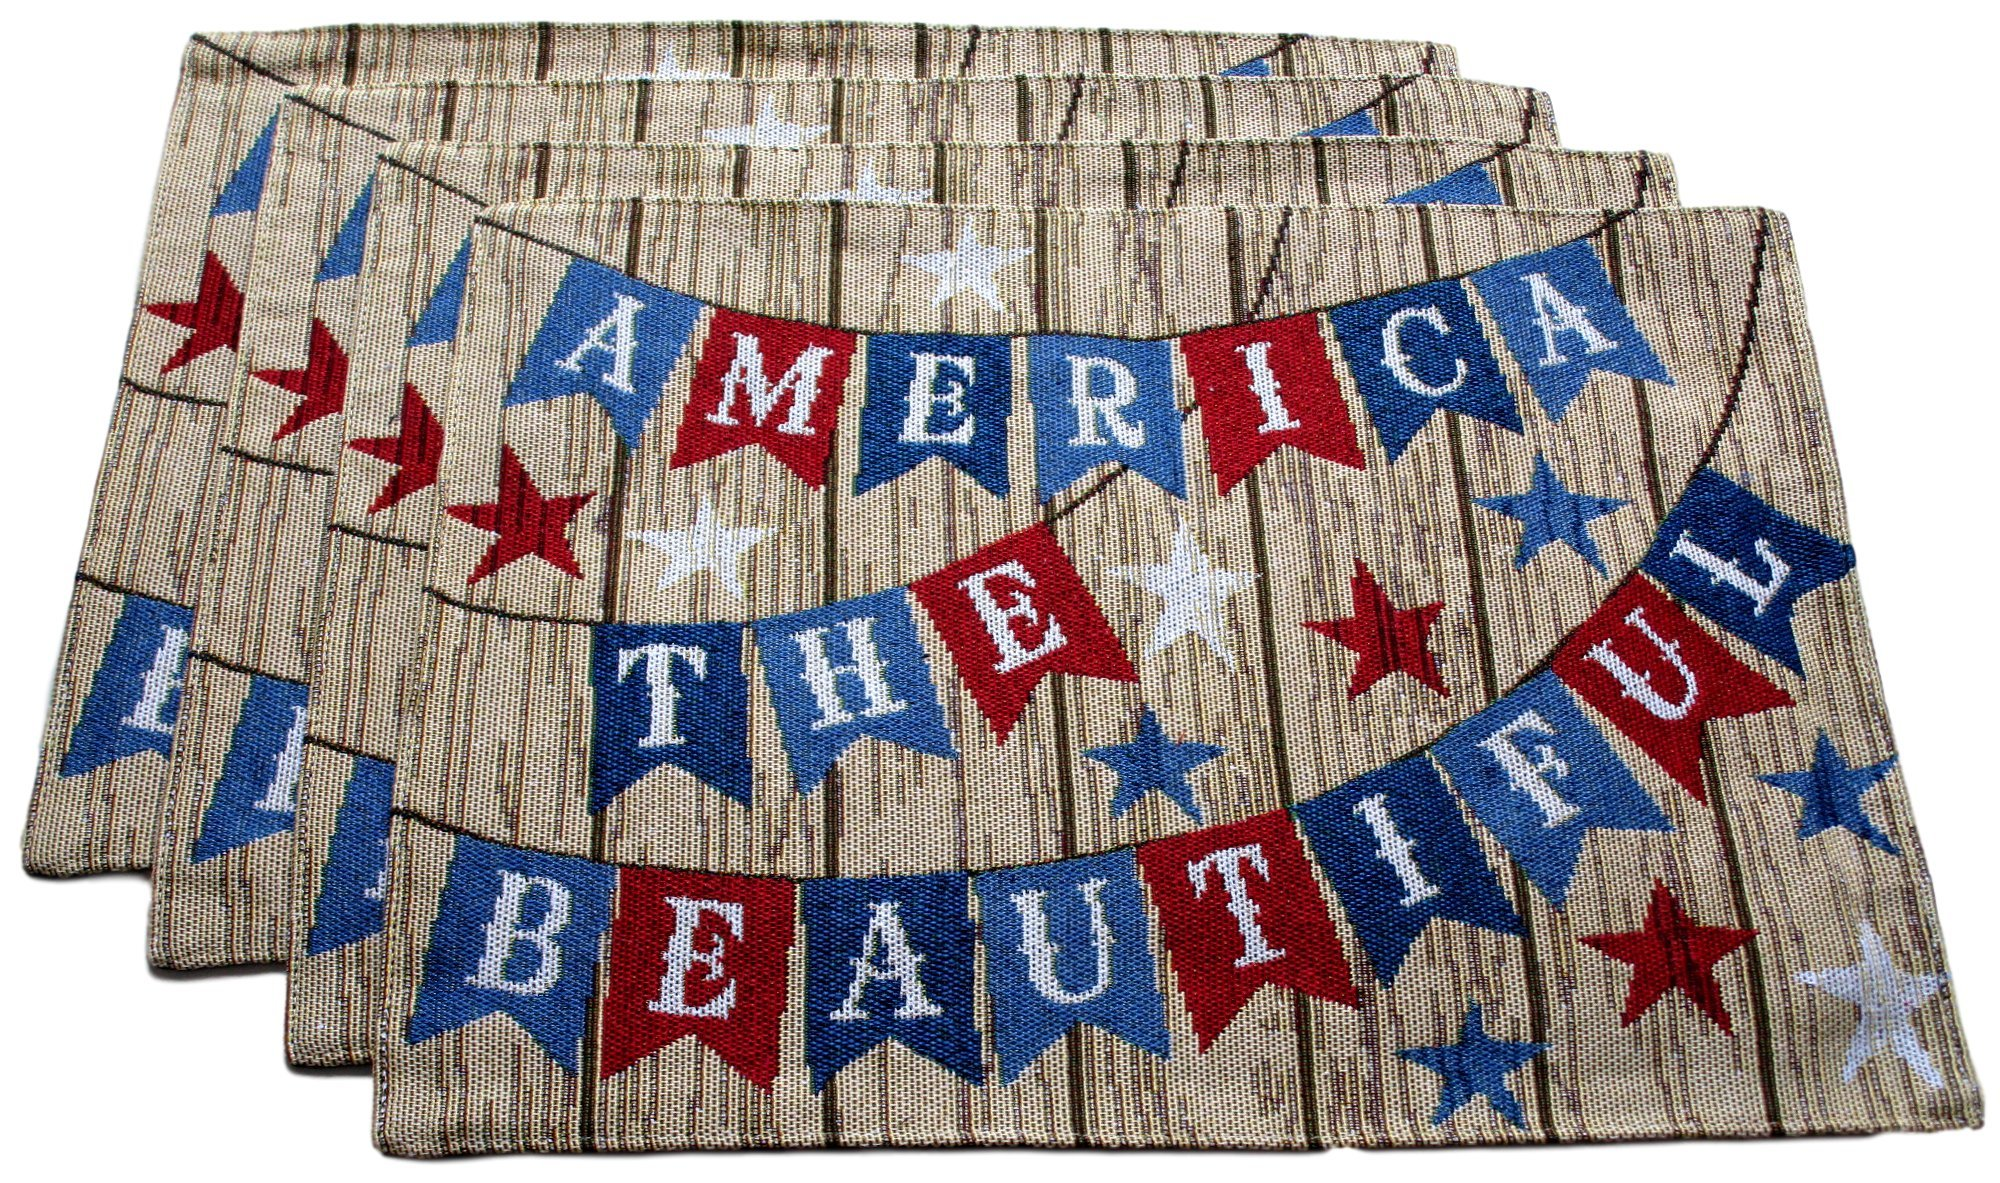 Patriotic Americana Woven Tapestry Place Mats - Set of 4 (America the Beautiful)